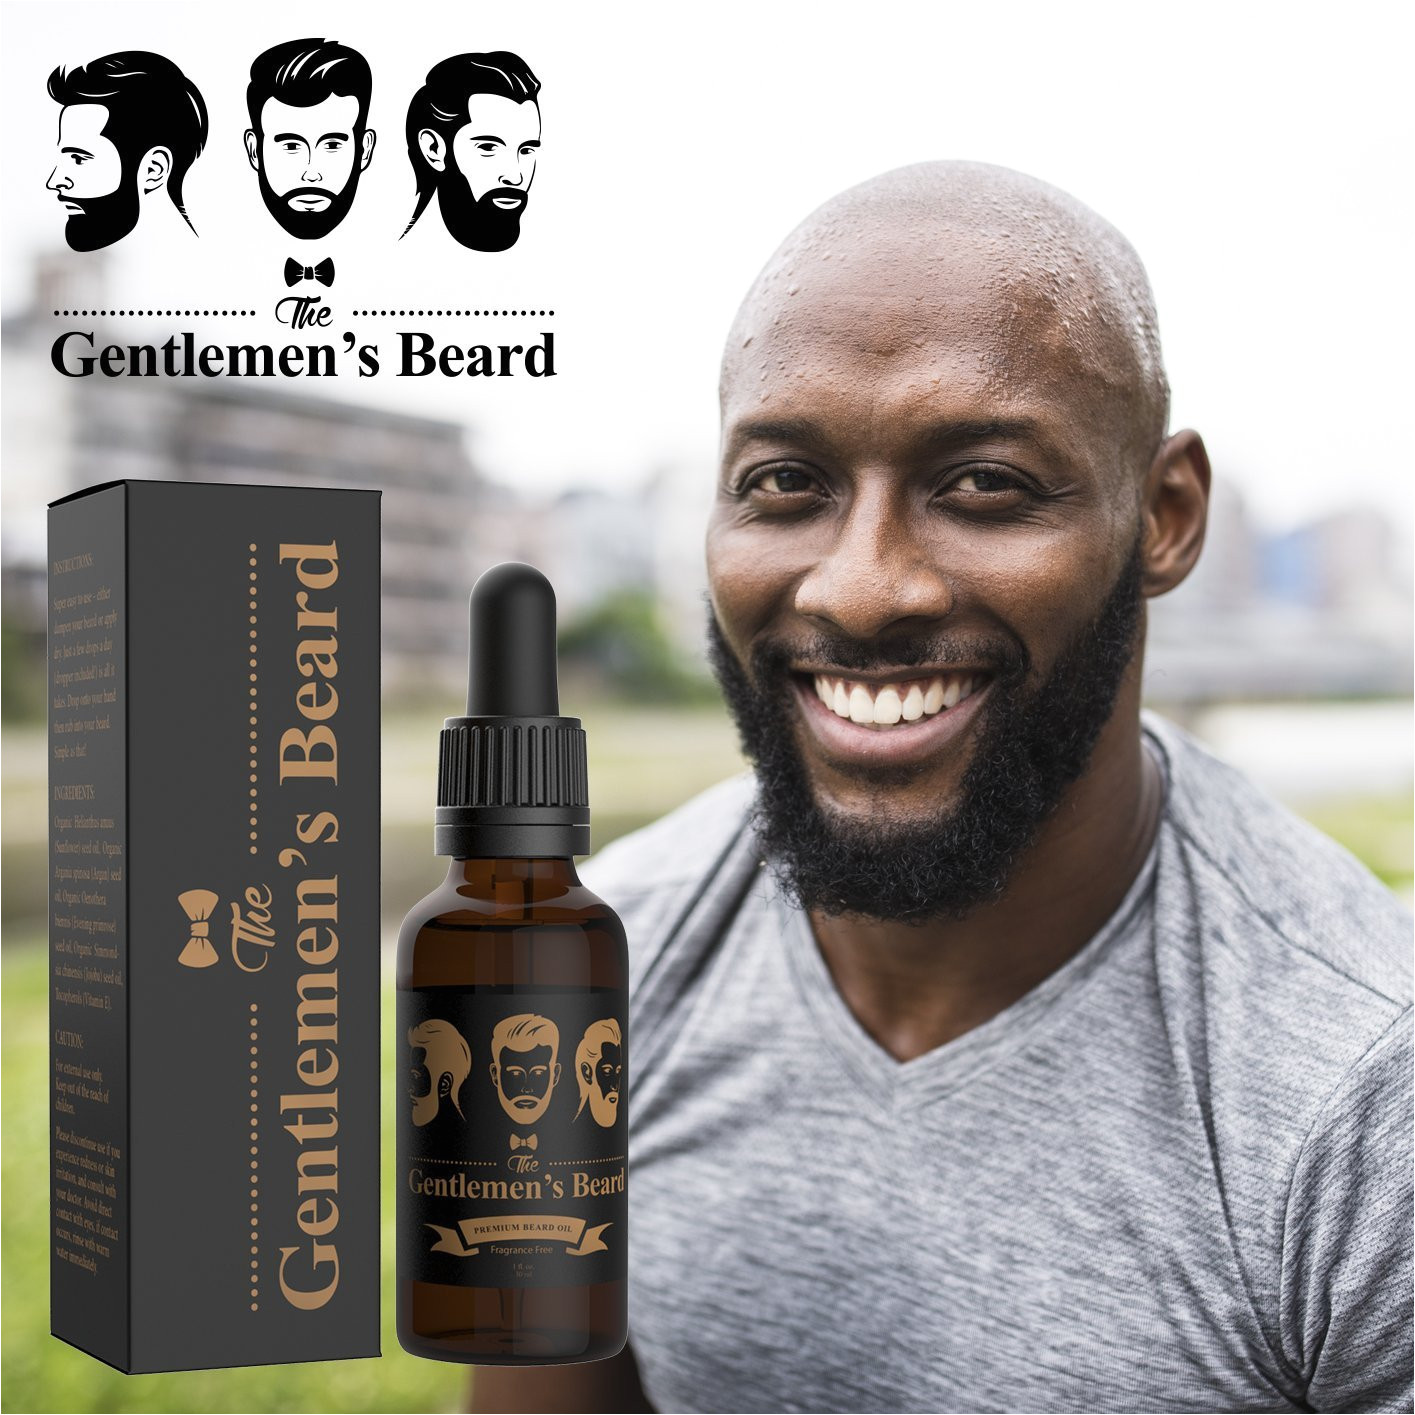 amazon com the gentlemen s beard premium beard oil leave in conditioner softener fragrance free beauty